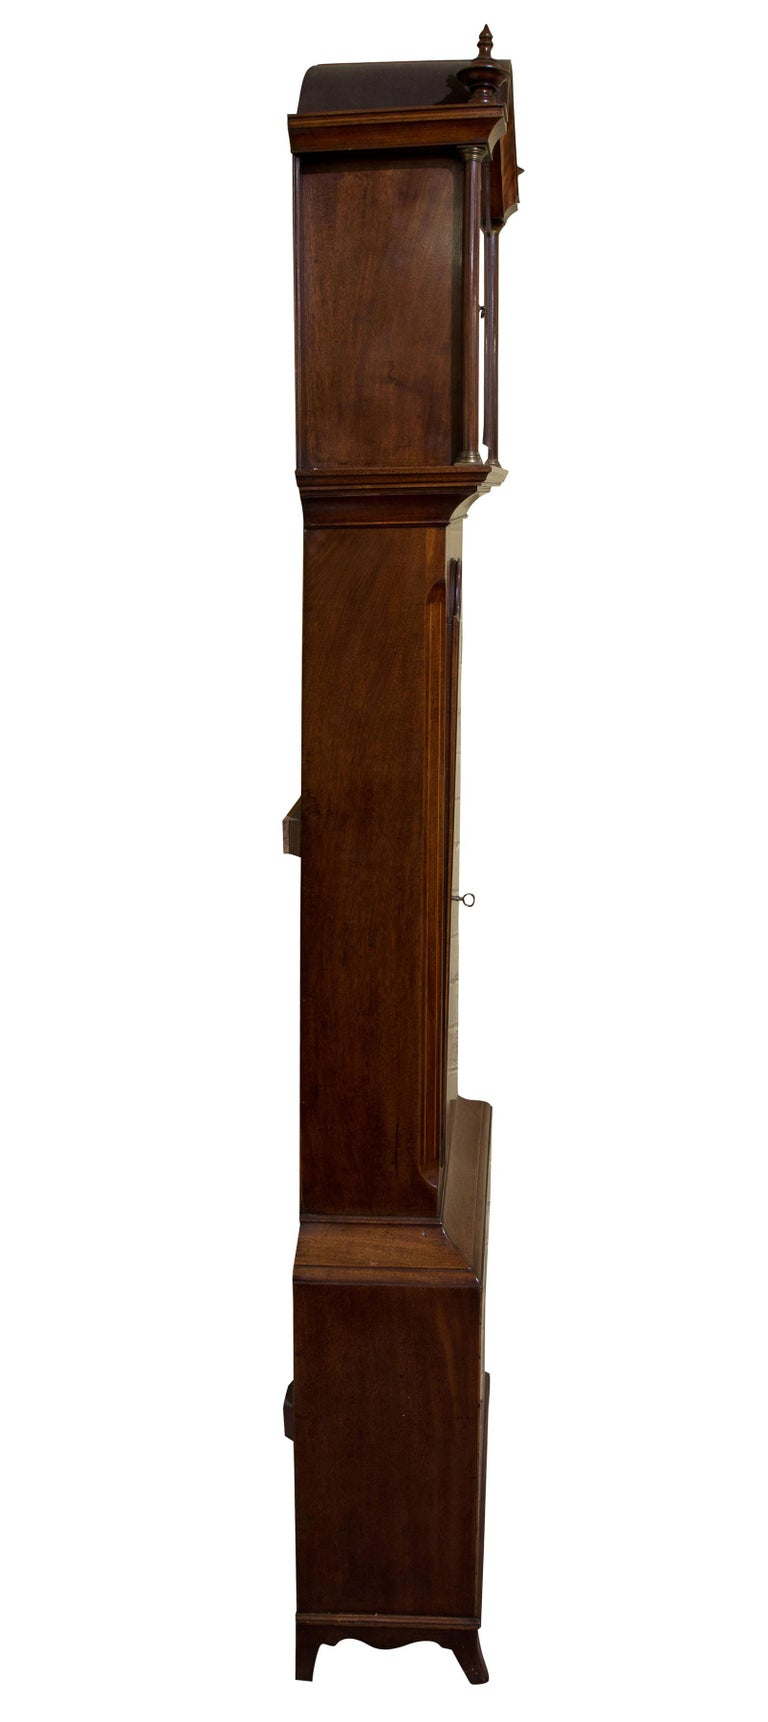 Late Georgian Mahogany Longcase Clock, circa 1800 In Good Condition For Sale In Salisbury, GB